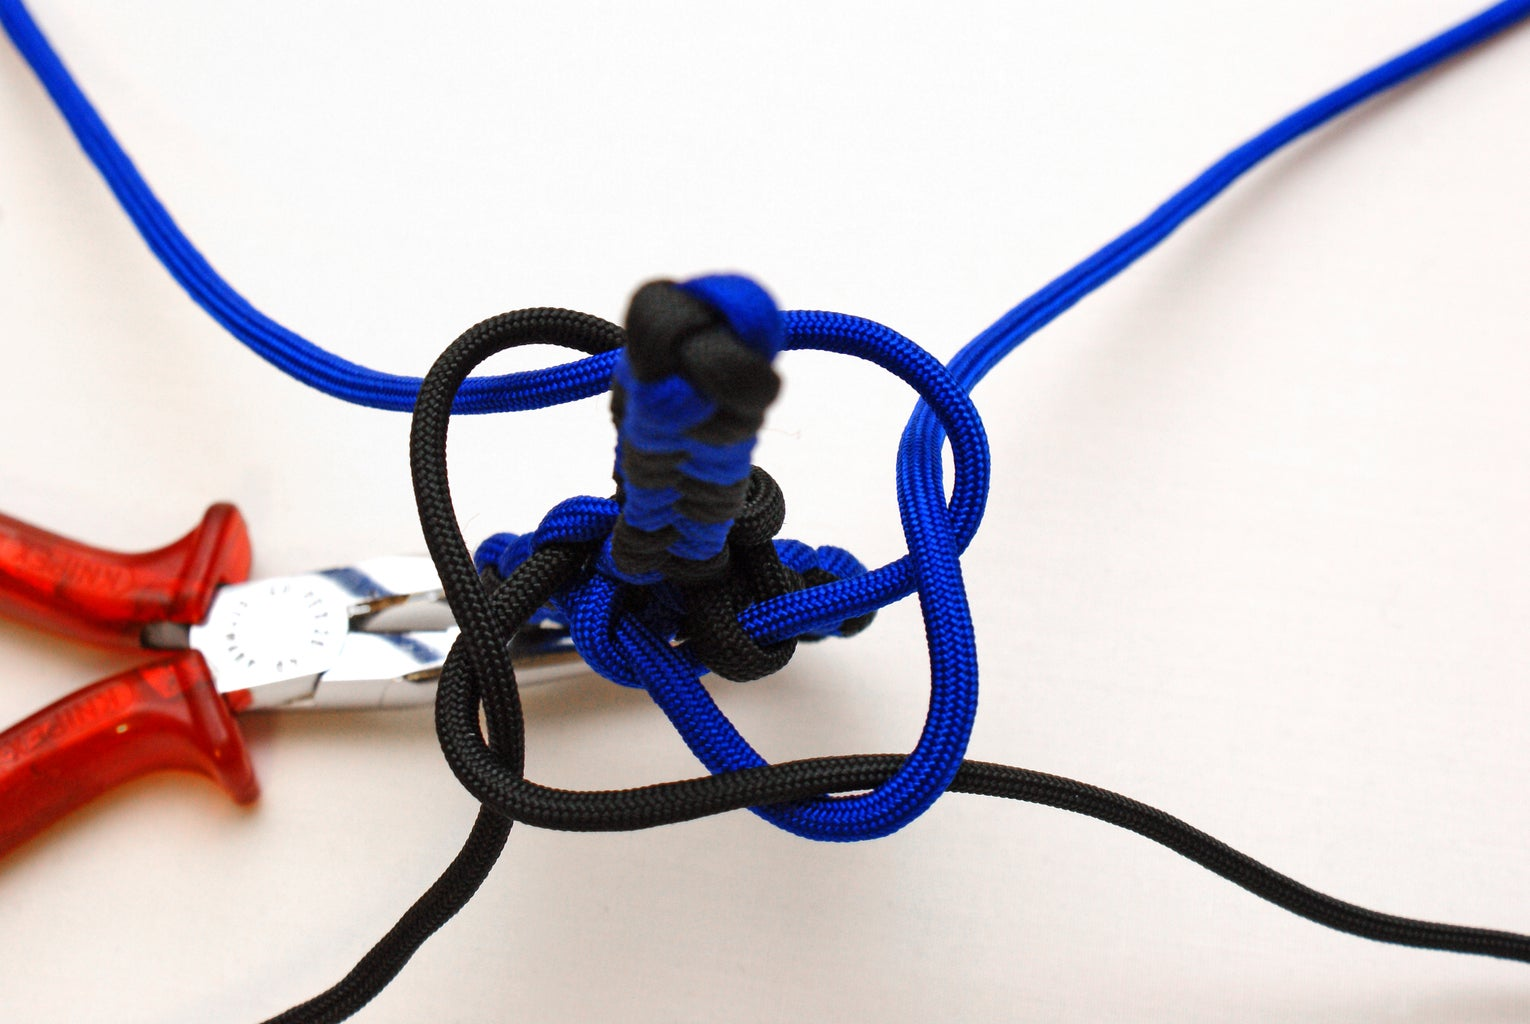 The Manrope Knot (The Square Knot / Box Knot)